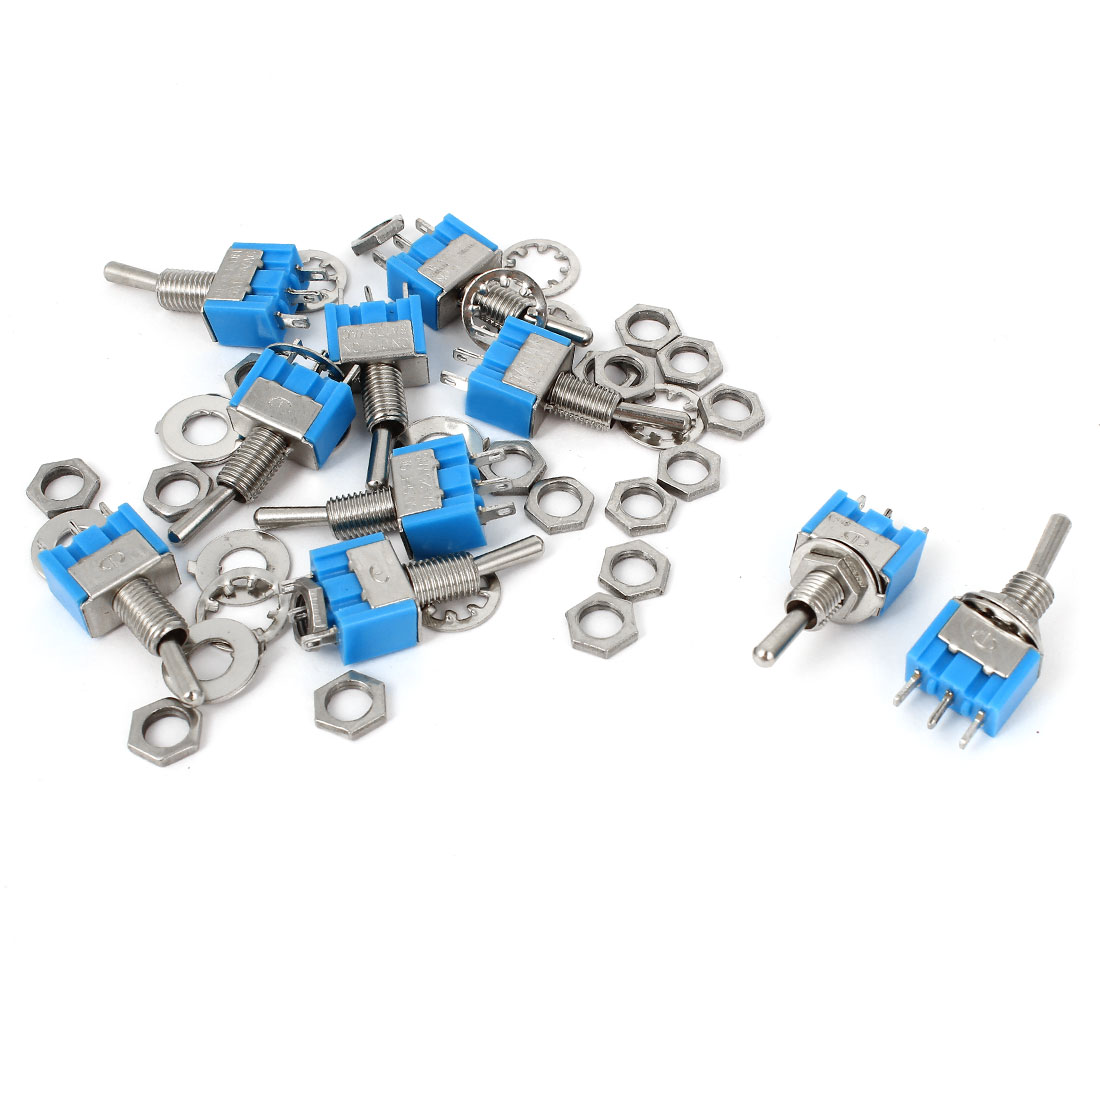 10PCS 3 Terminals SPDT On-On Latching Mini Toggle Switch Blue AC 125V 6A